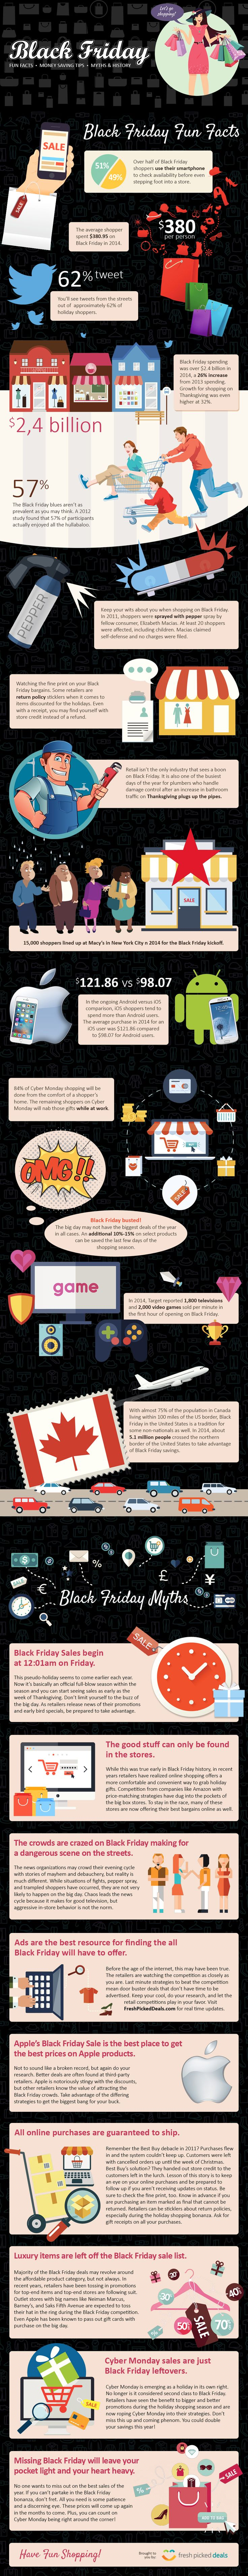 Black Friday Guide – Let's go shopping! #infographic #Shopping #BlackFriday